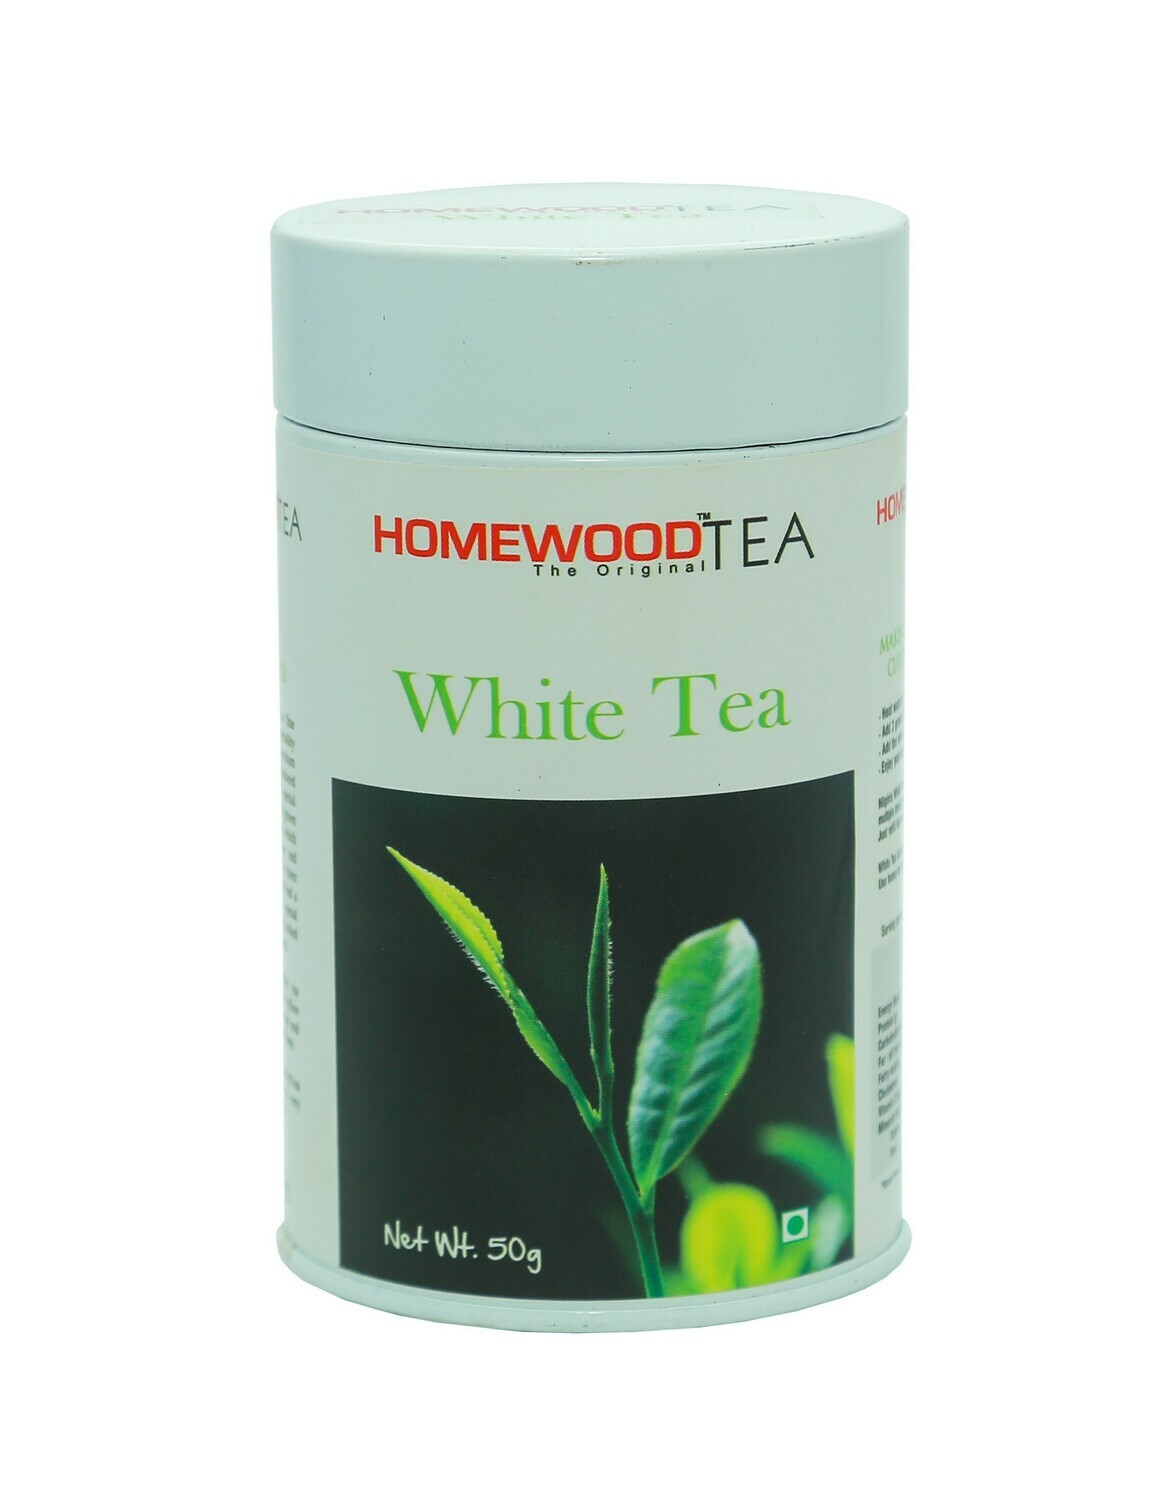 Homewood White Tea